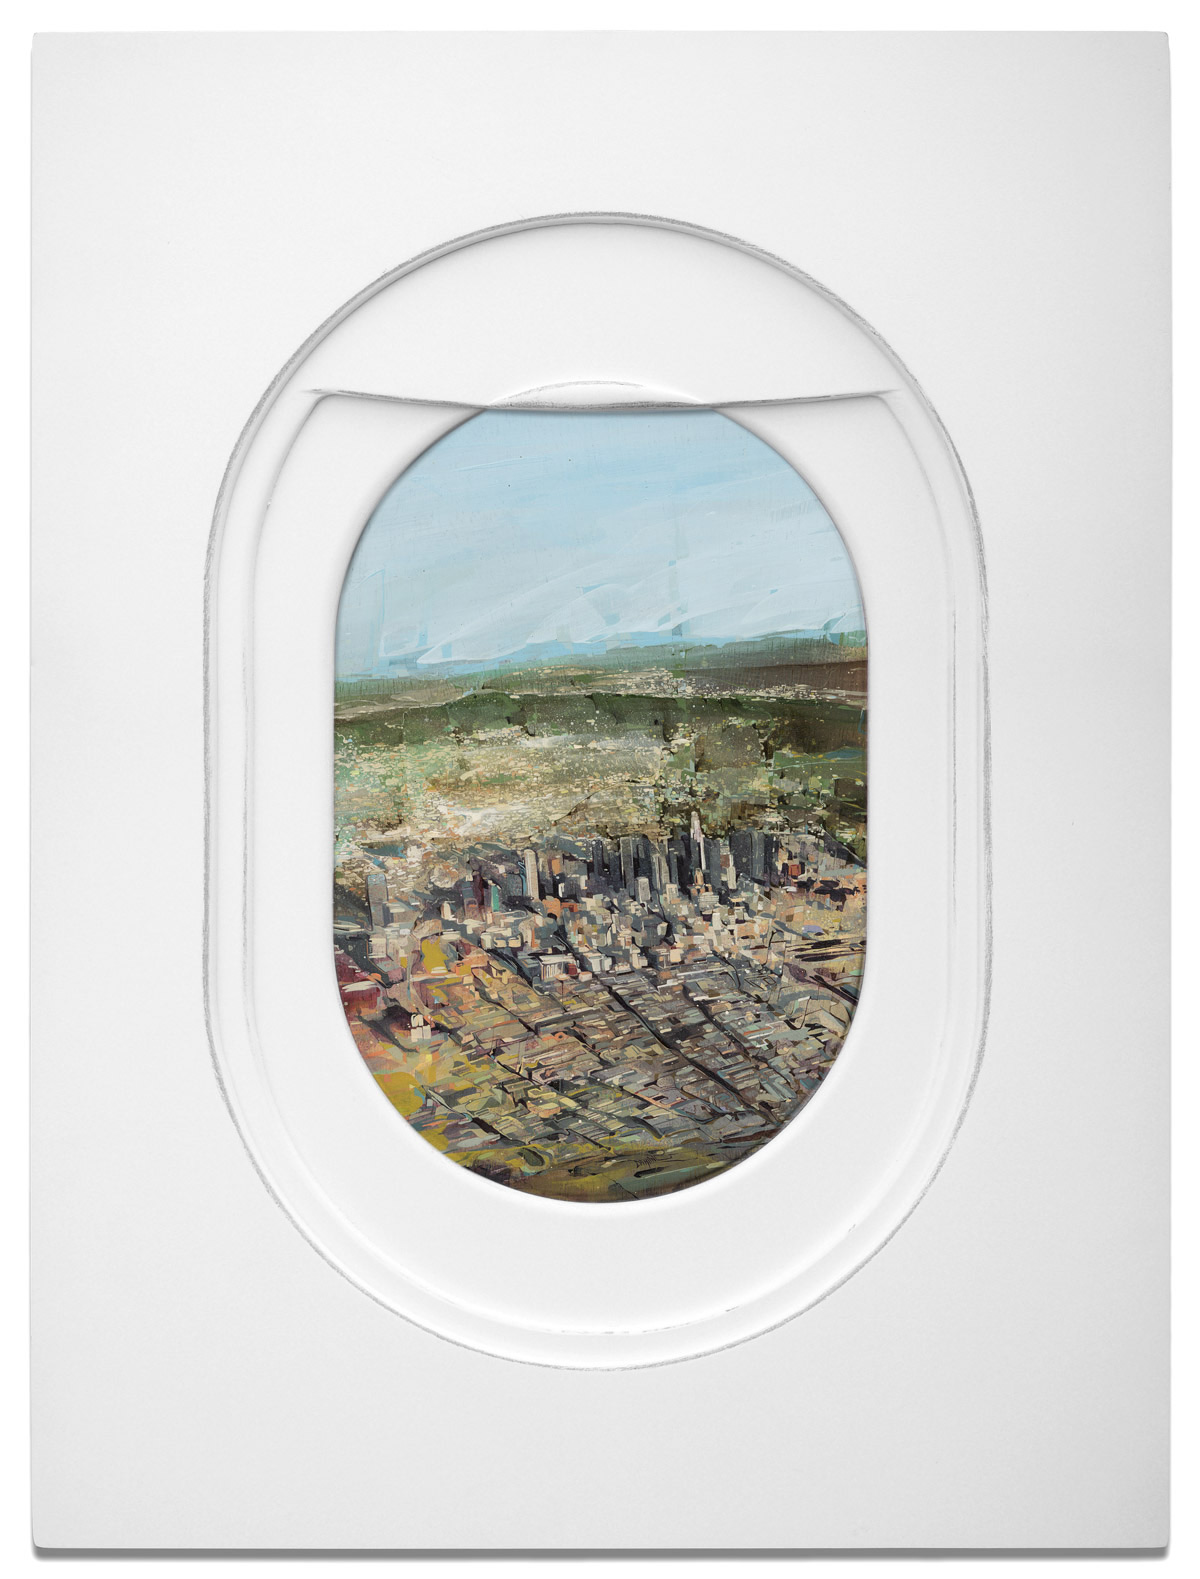 Peek Out of These Painted Airplane Windows to Spot Diverse Landscapes